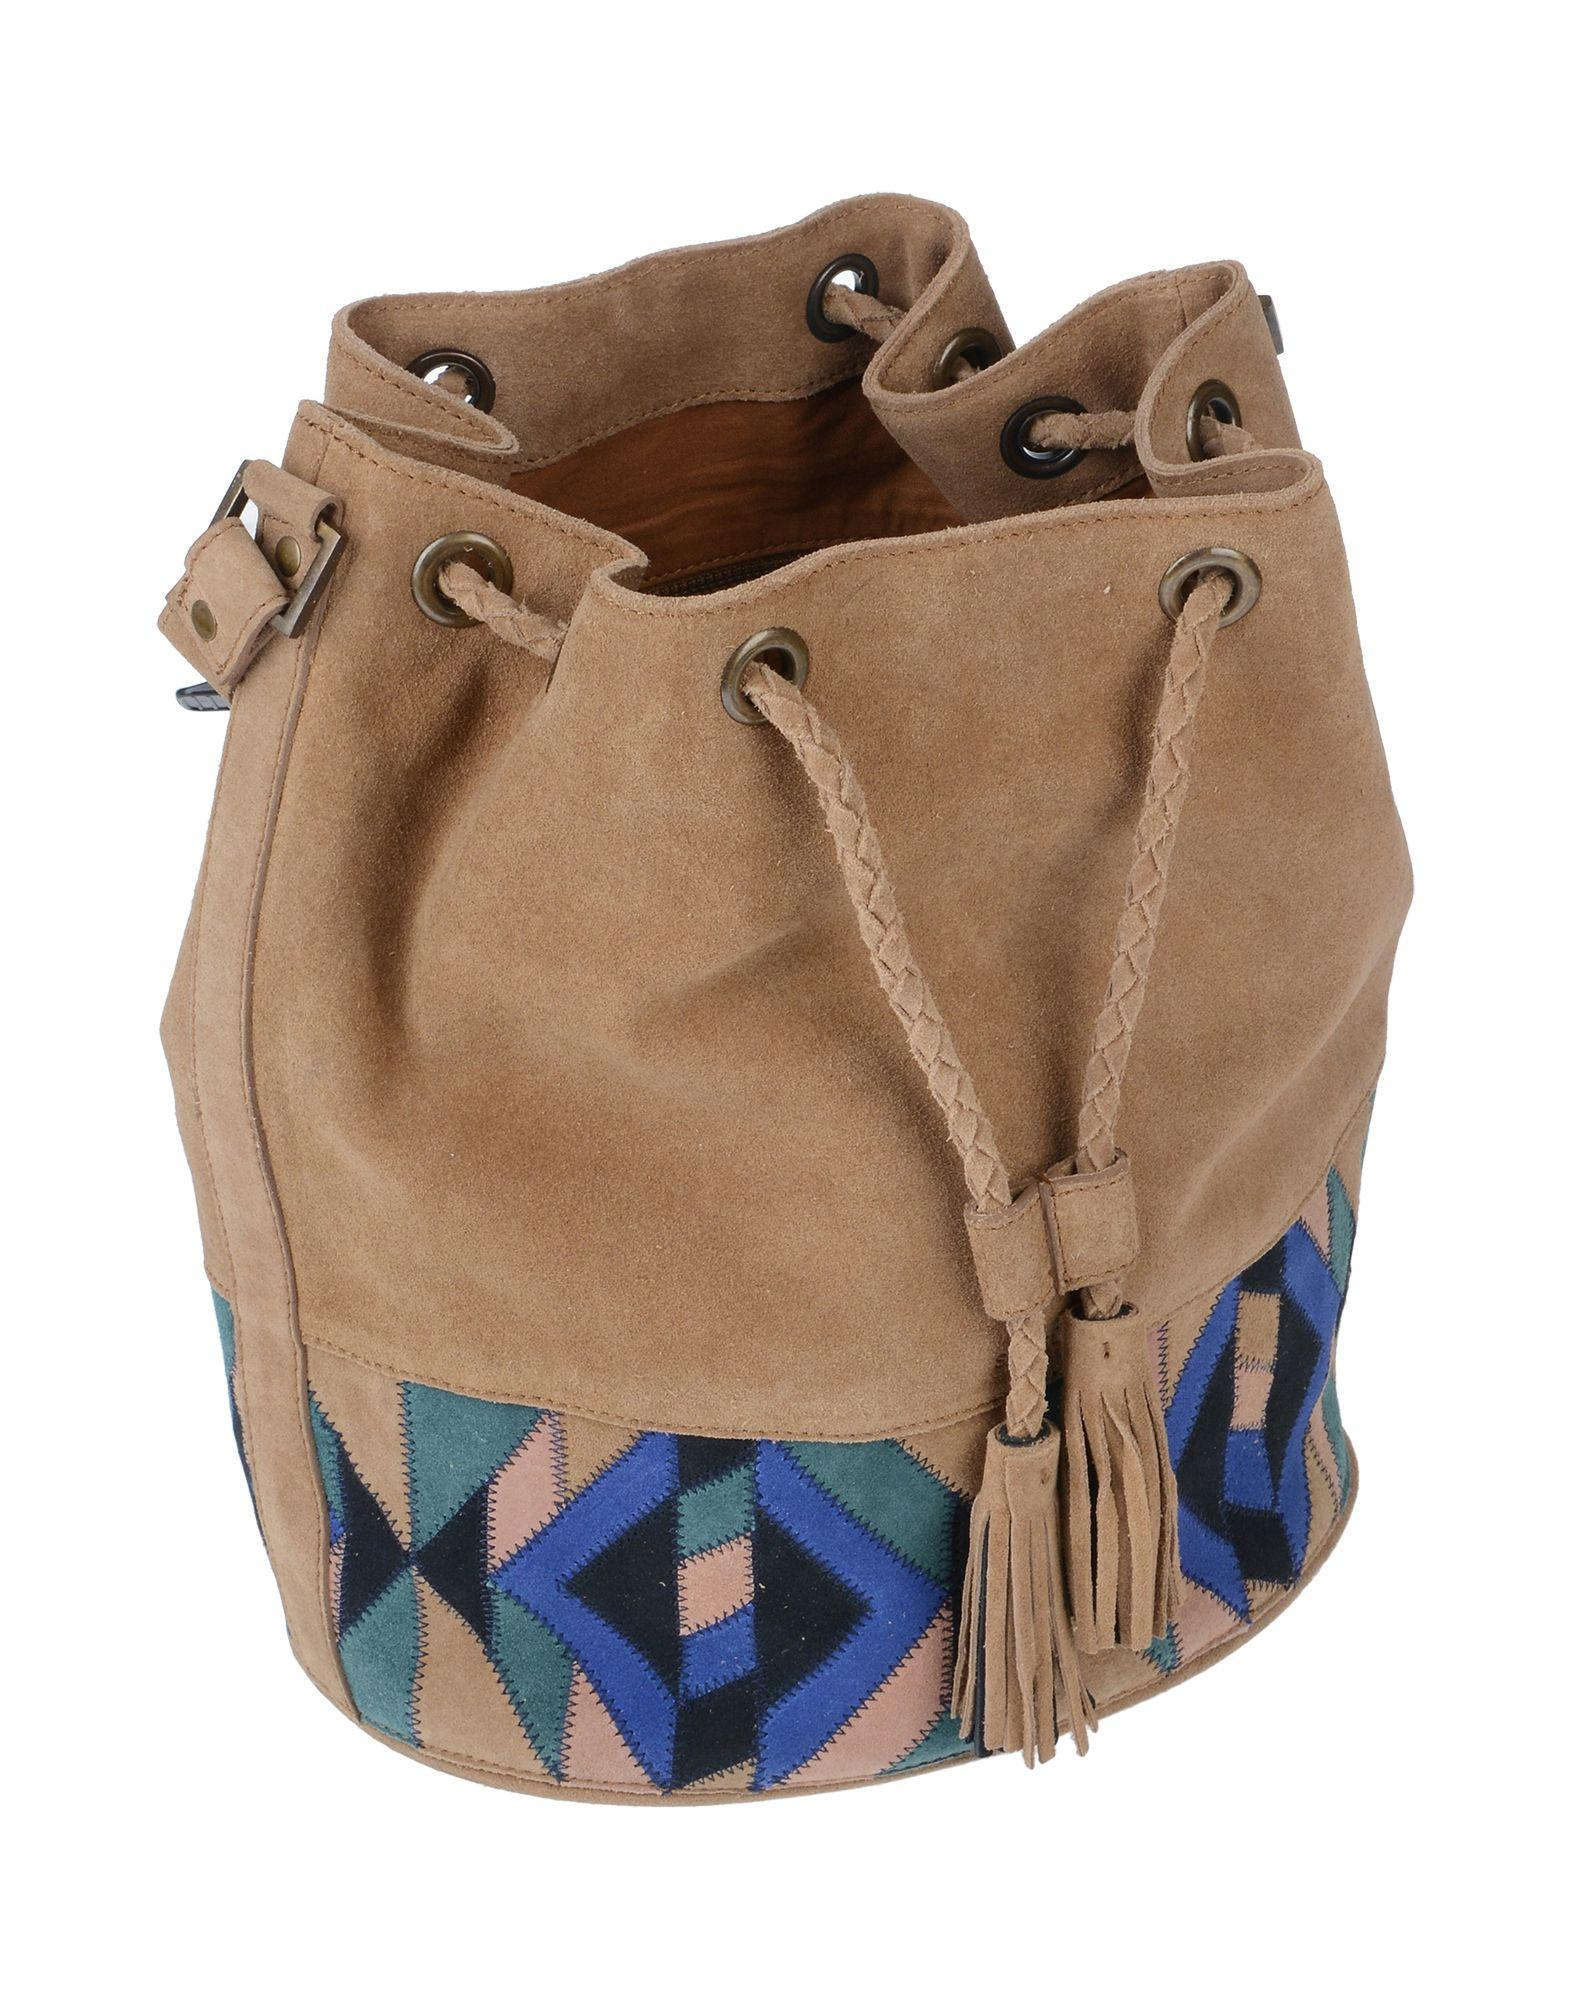 3e3a273d50 Lyst - Sessun Cross-body Bag